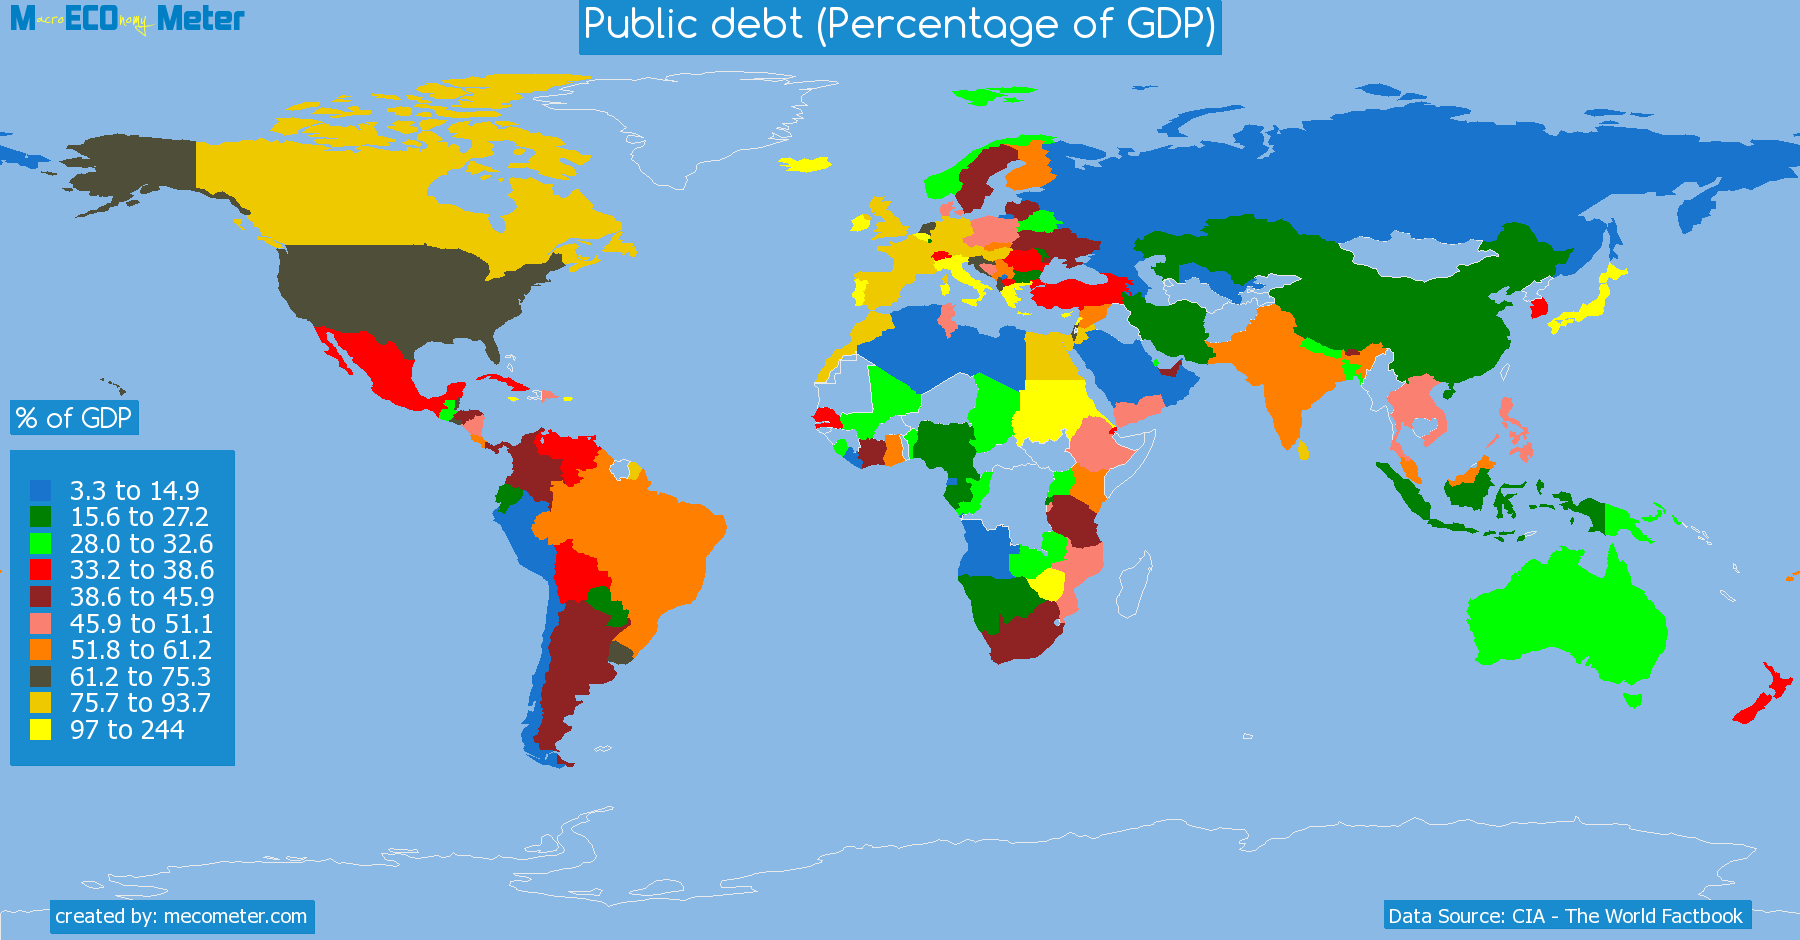 list of countries by Public debt (Percentage of GDP)